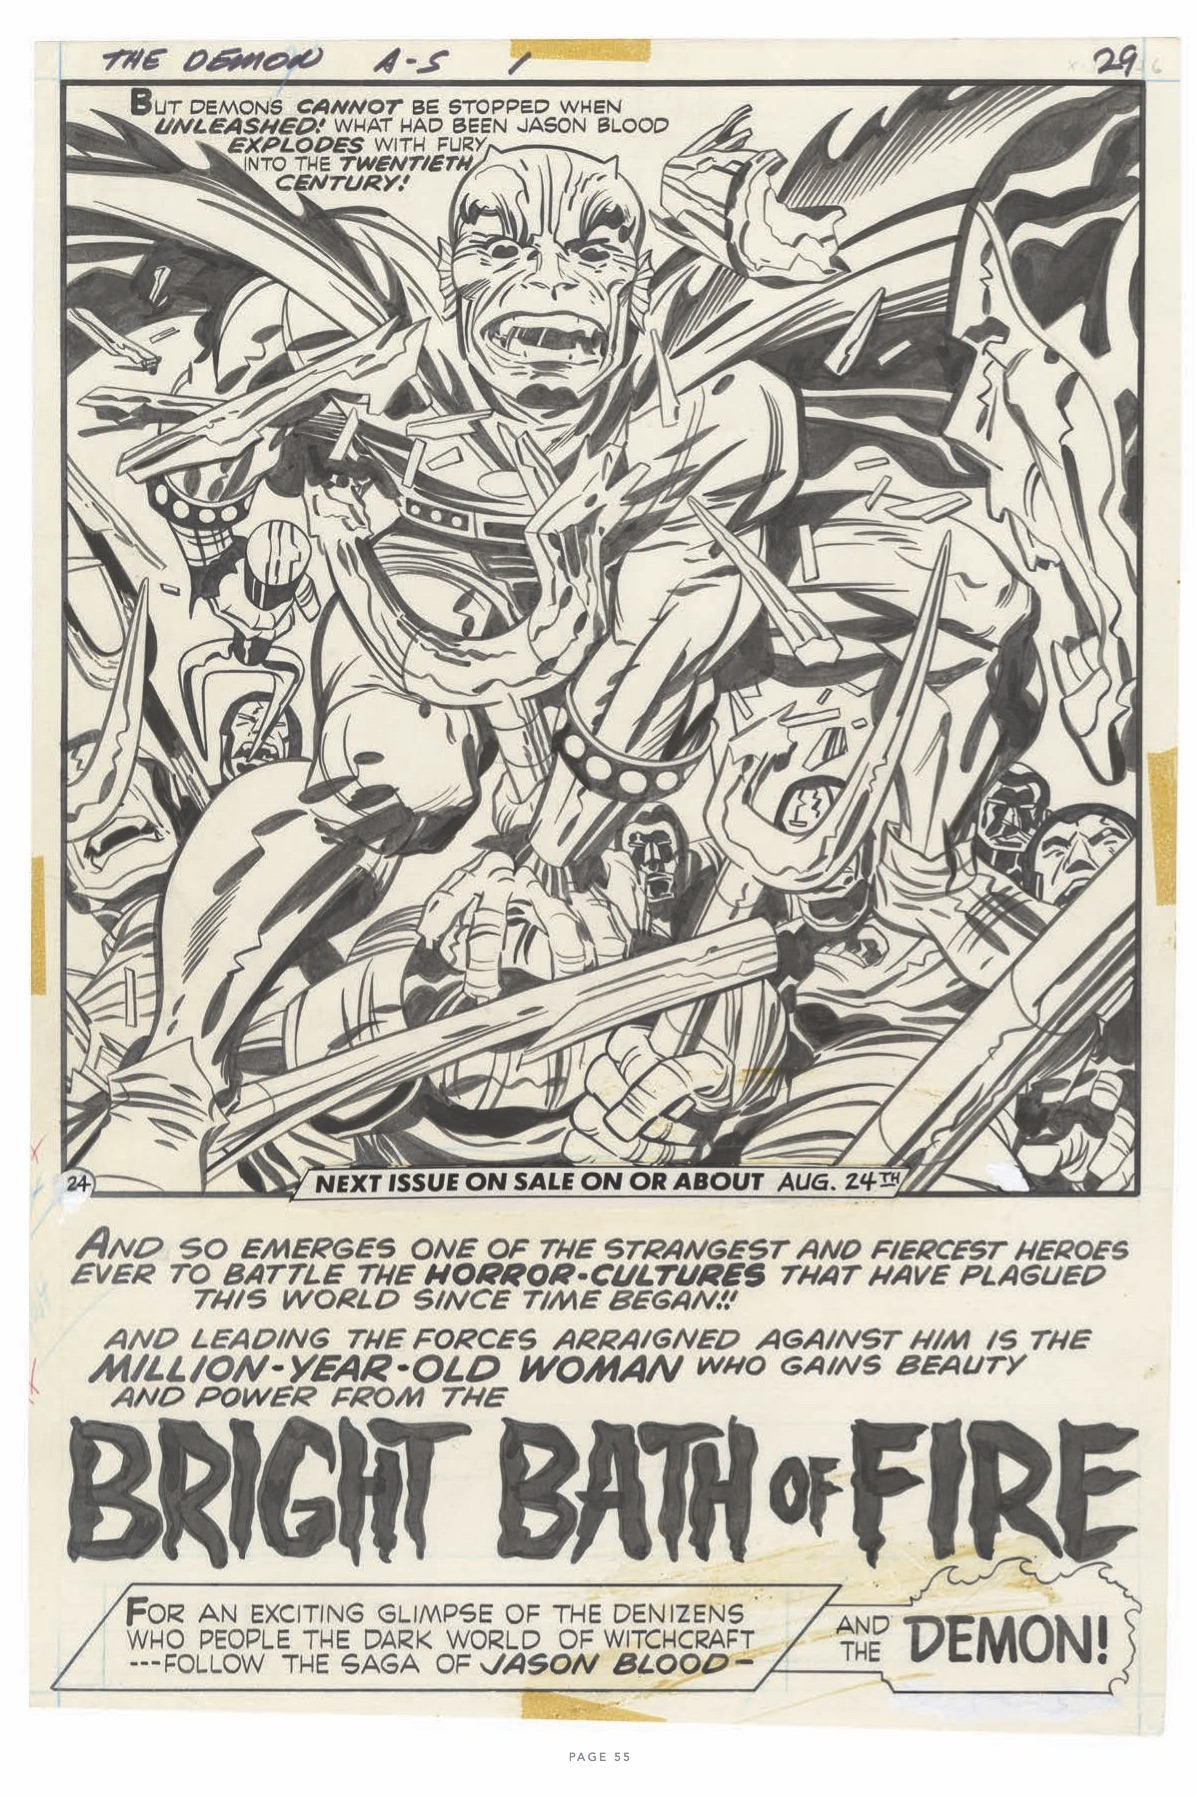 jackkirby_pencils_inks-lodemon4ink